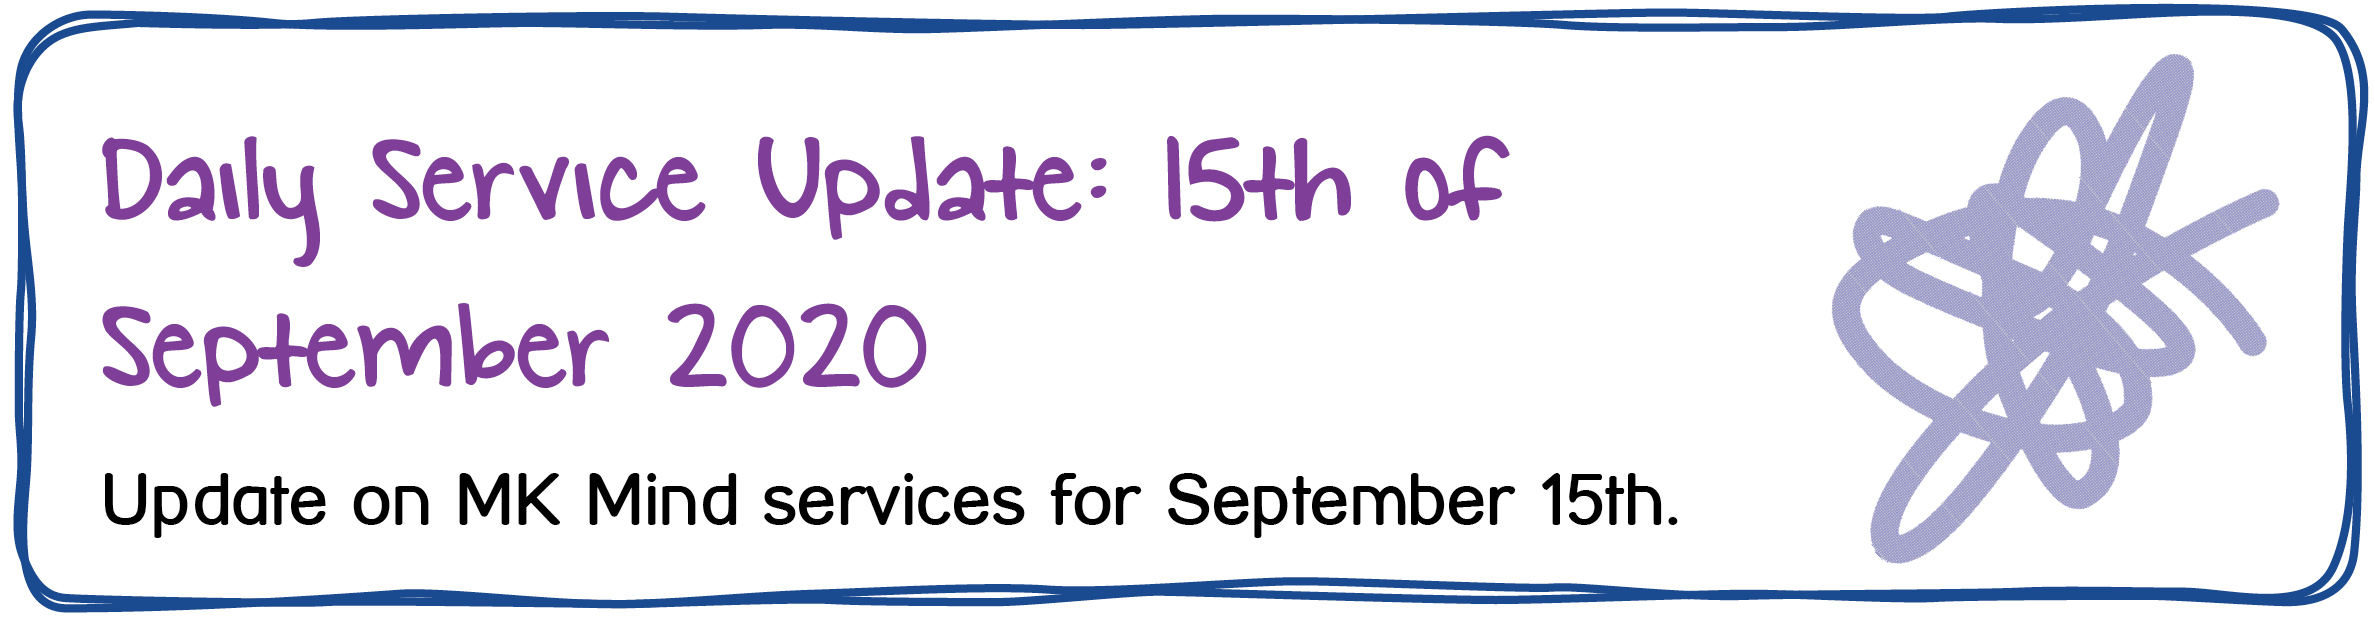 Daily Service Update: 15th of September 2020. Update on MK Mind services for September 15th.